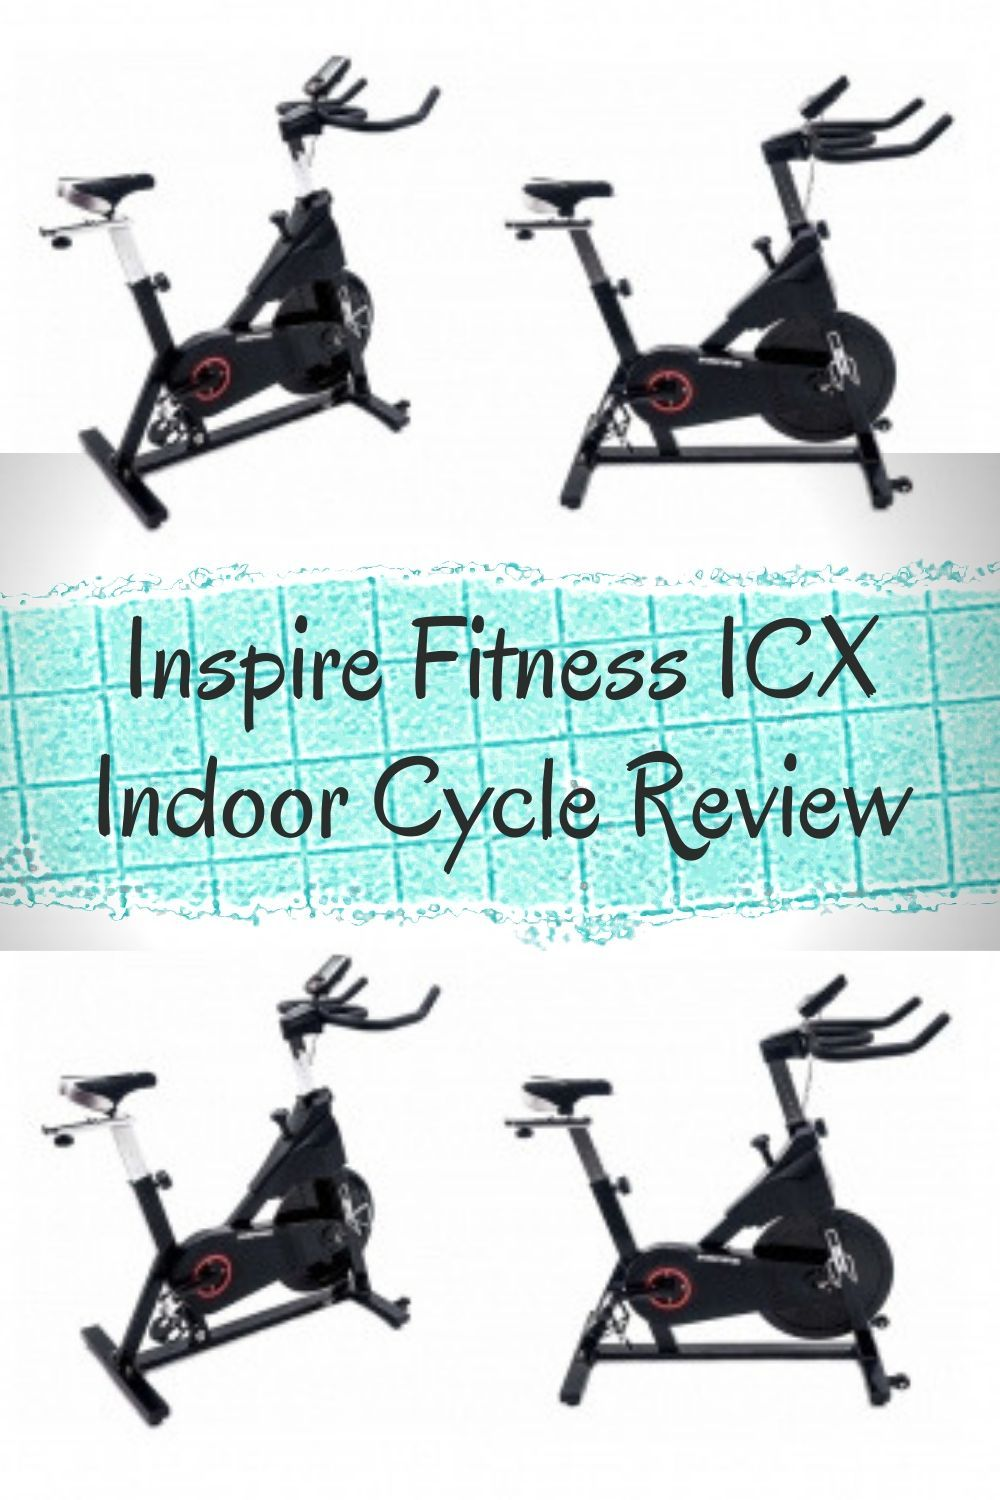 Inspire Fitness Icx Indoor Cycle Review In 2020 Spinning Workout Cycling Motivation Cycling Workout